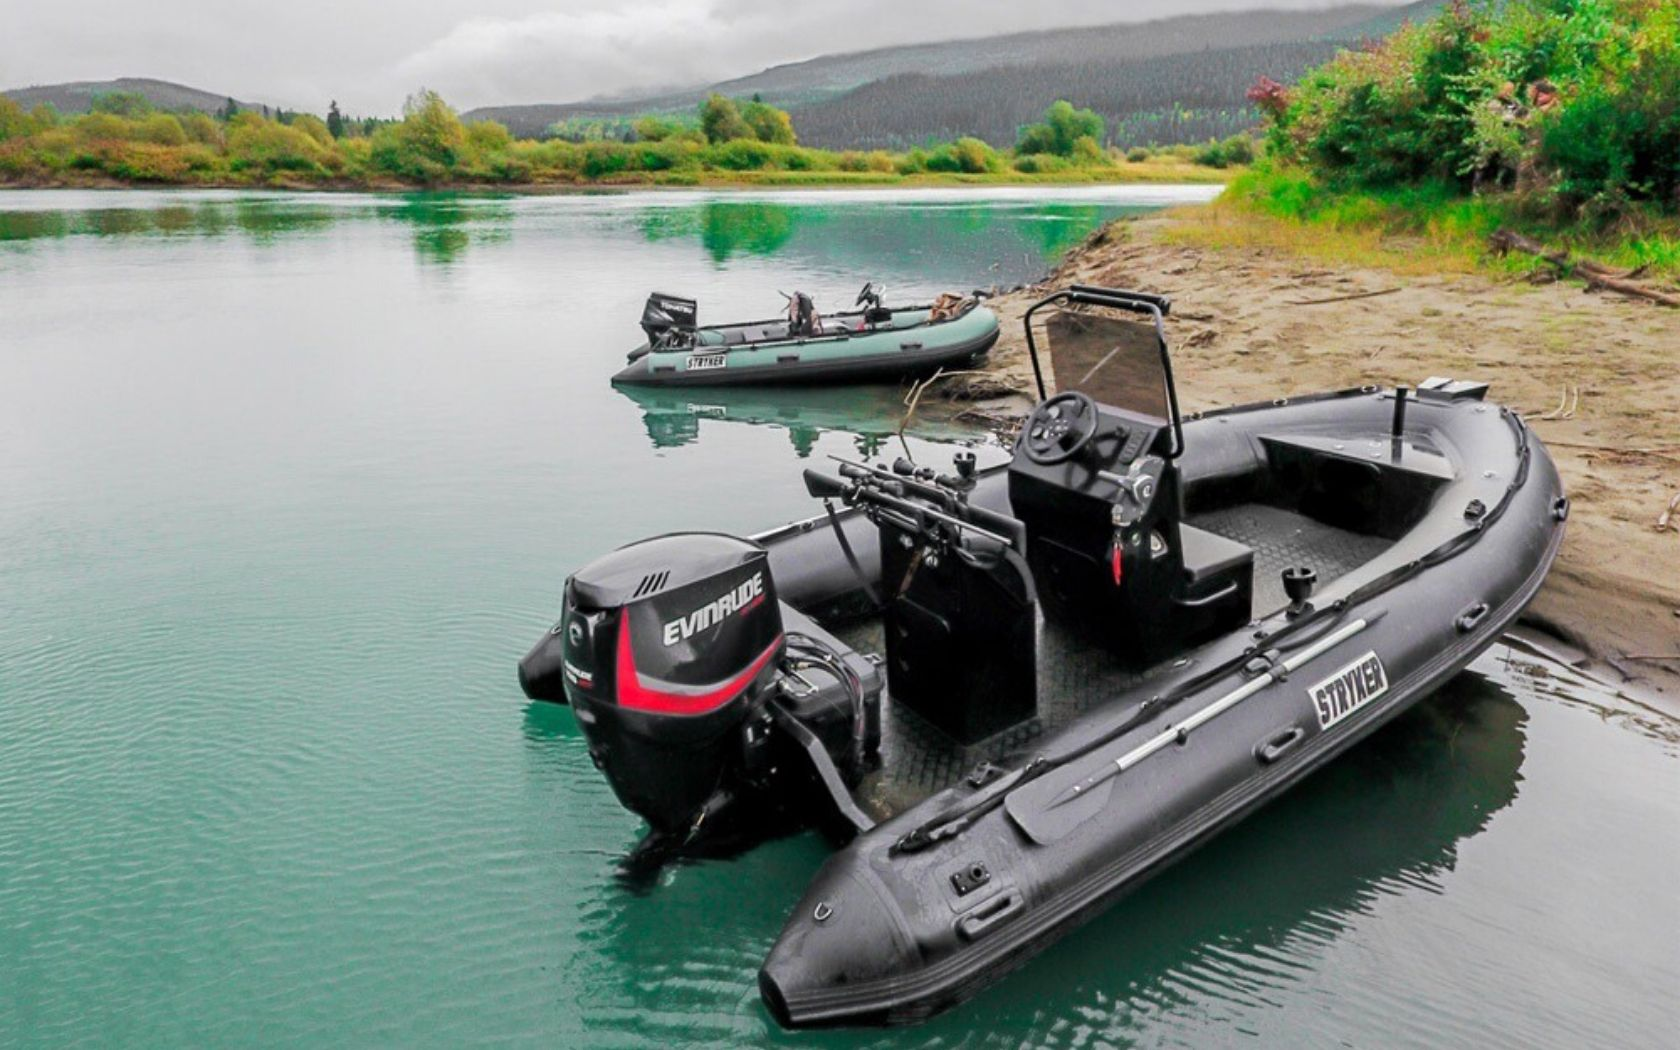 Two Stryker Inflatable Boats floating on a gorgeous lake.